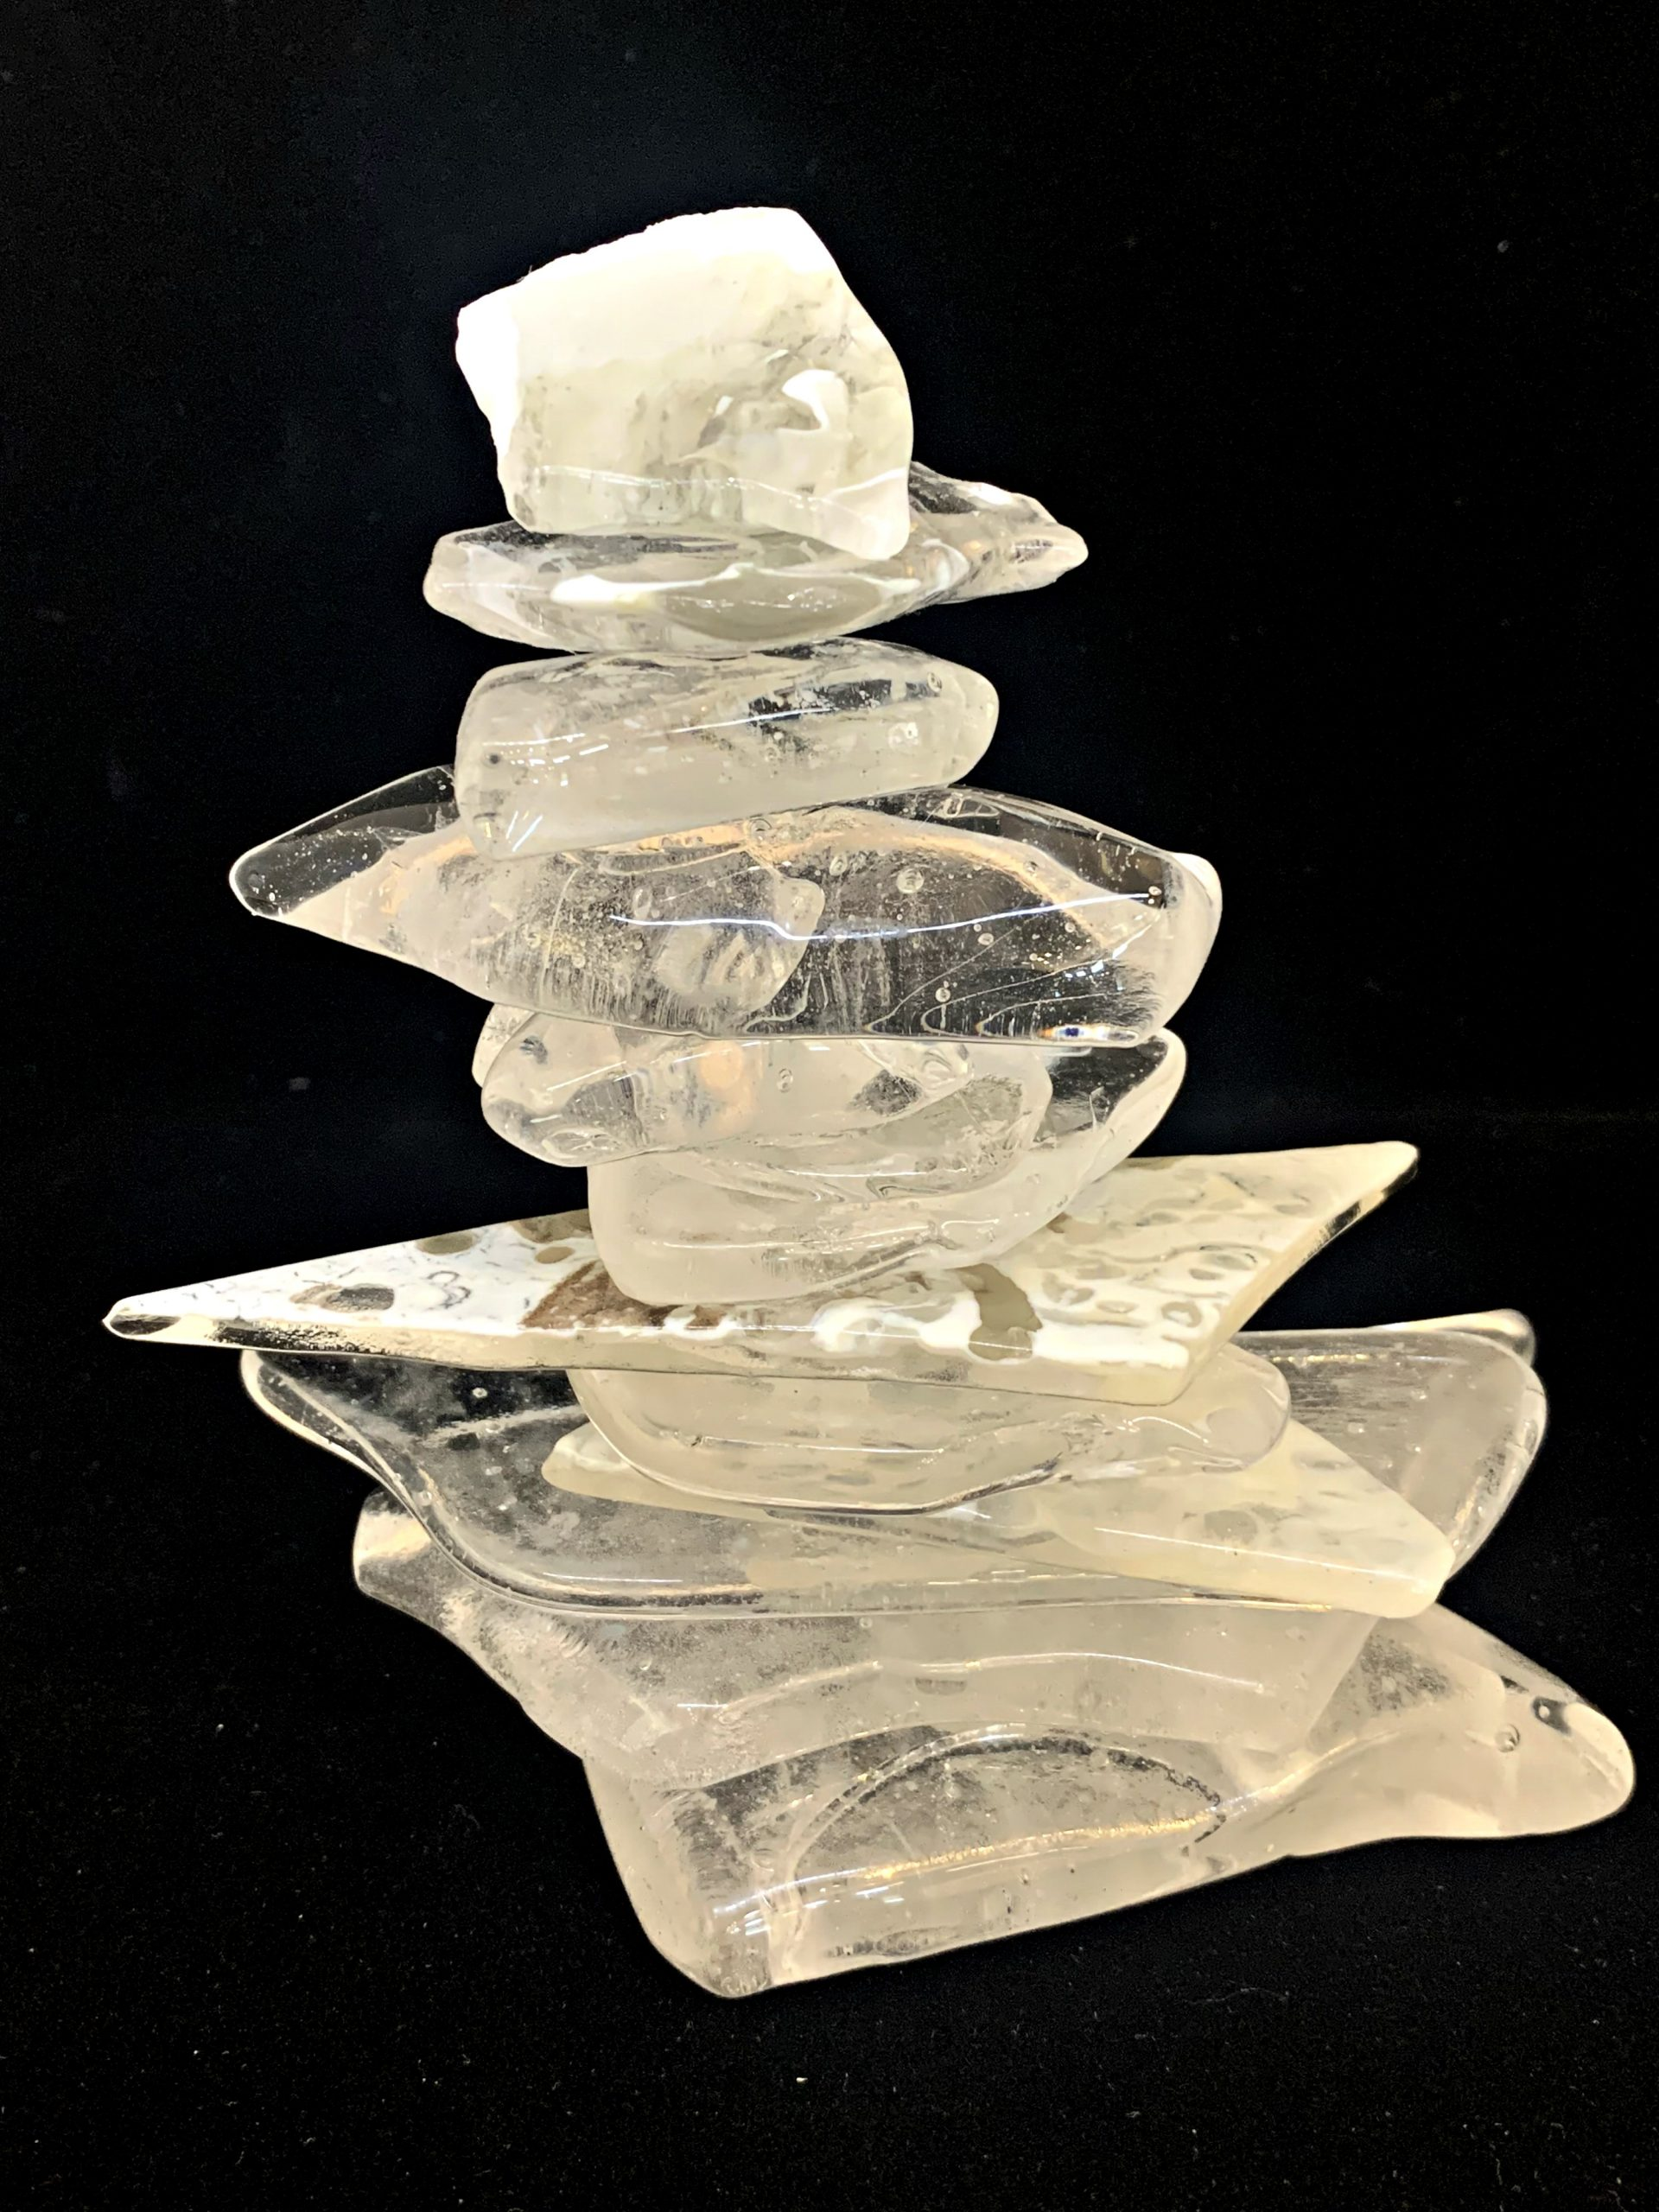 Cast Glass Rocky Mountain Cairn 37 by Heather Cuell | Effusion Art Gallery + Cast Glass Studio, Invermere BC